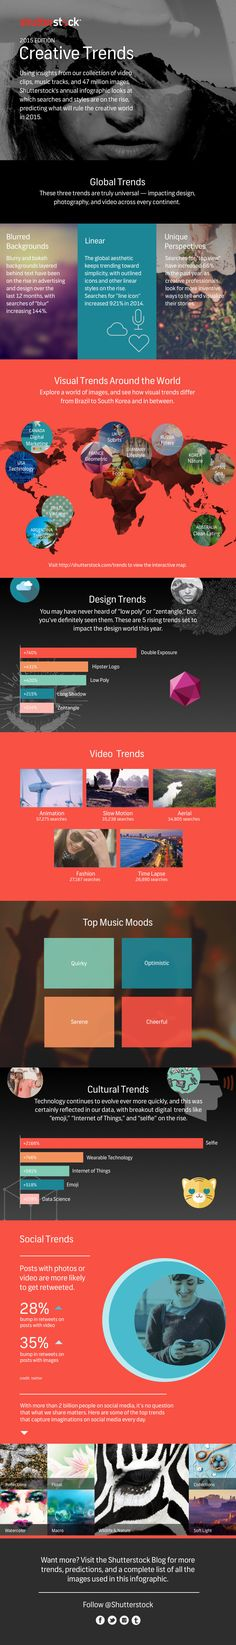 #Infographic: Explore Shutterstock's 2015 Creative Trends - #tech